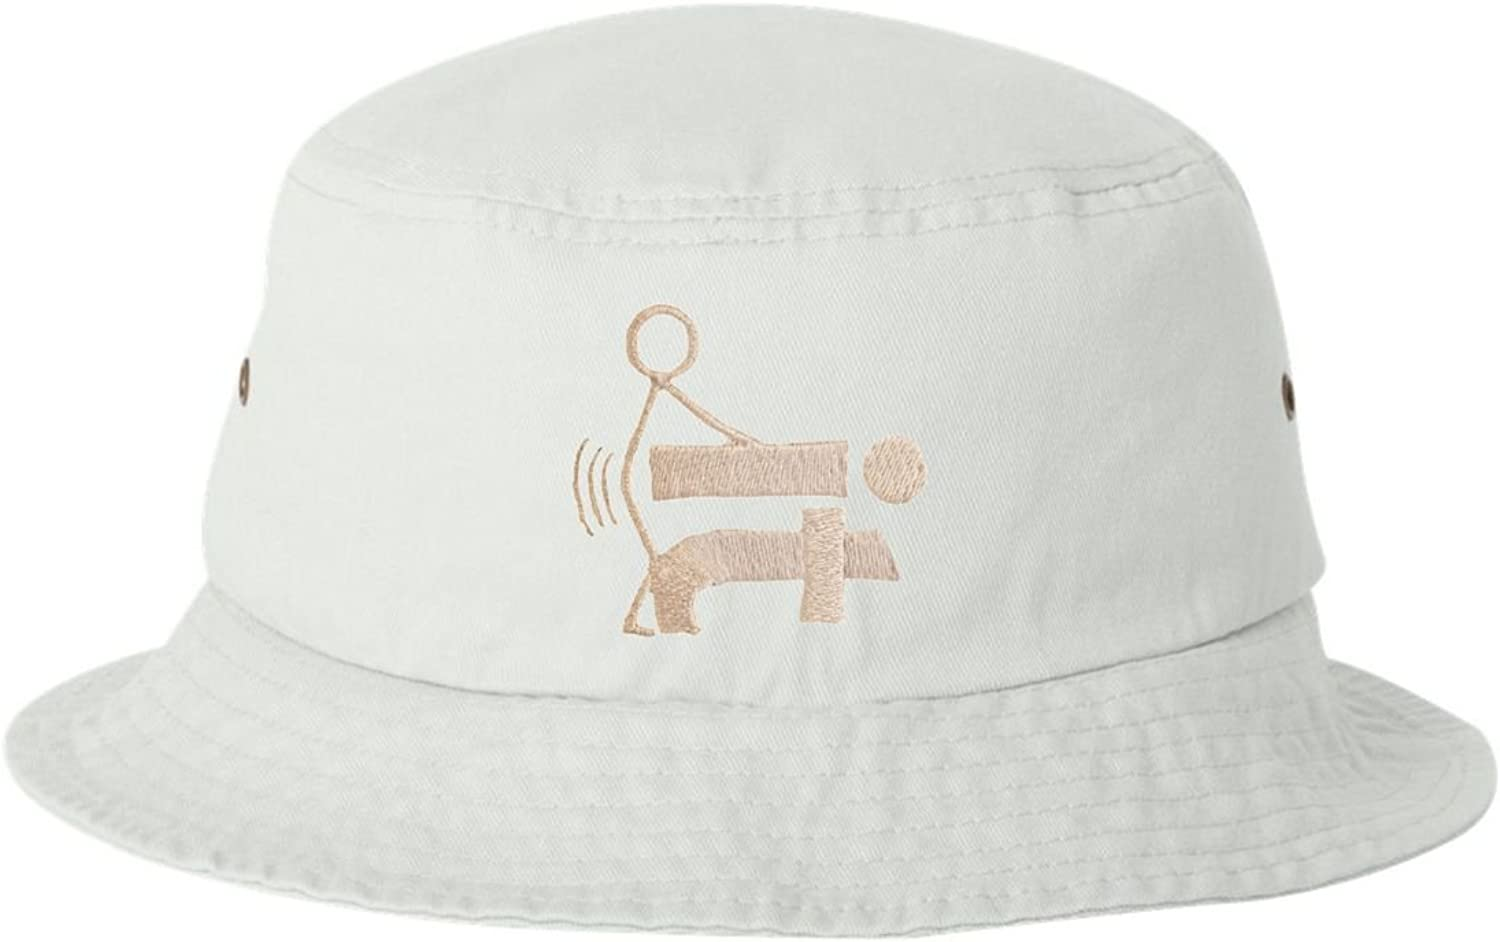 Go All Out Adult Screw It Embroidered Regular dealer Hat Cap Dad Max 69% OFF Bucket Fuck